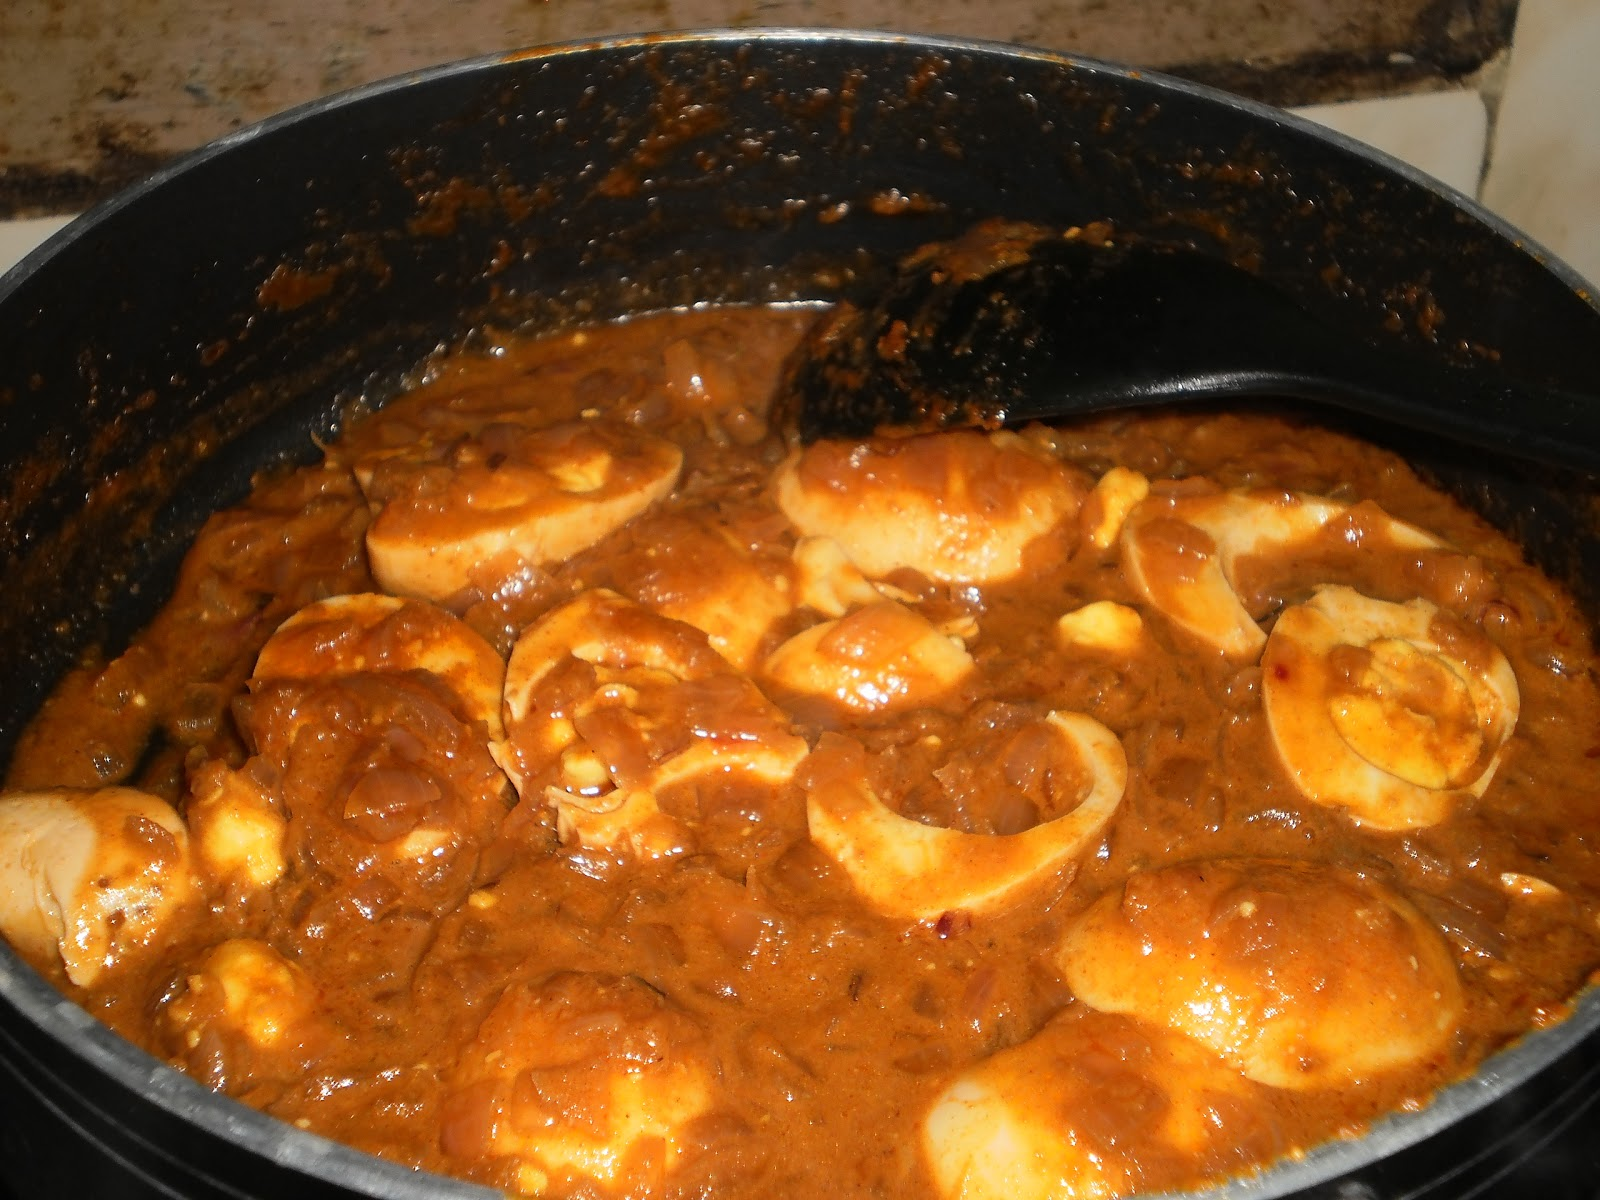 Egg vindaloo portuguese cuisine influenced curry recipe for Authentic portuguese cuisine